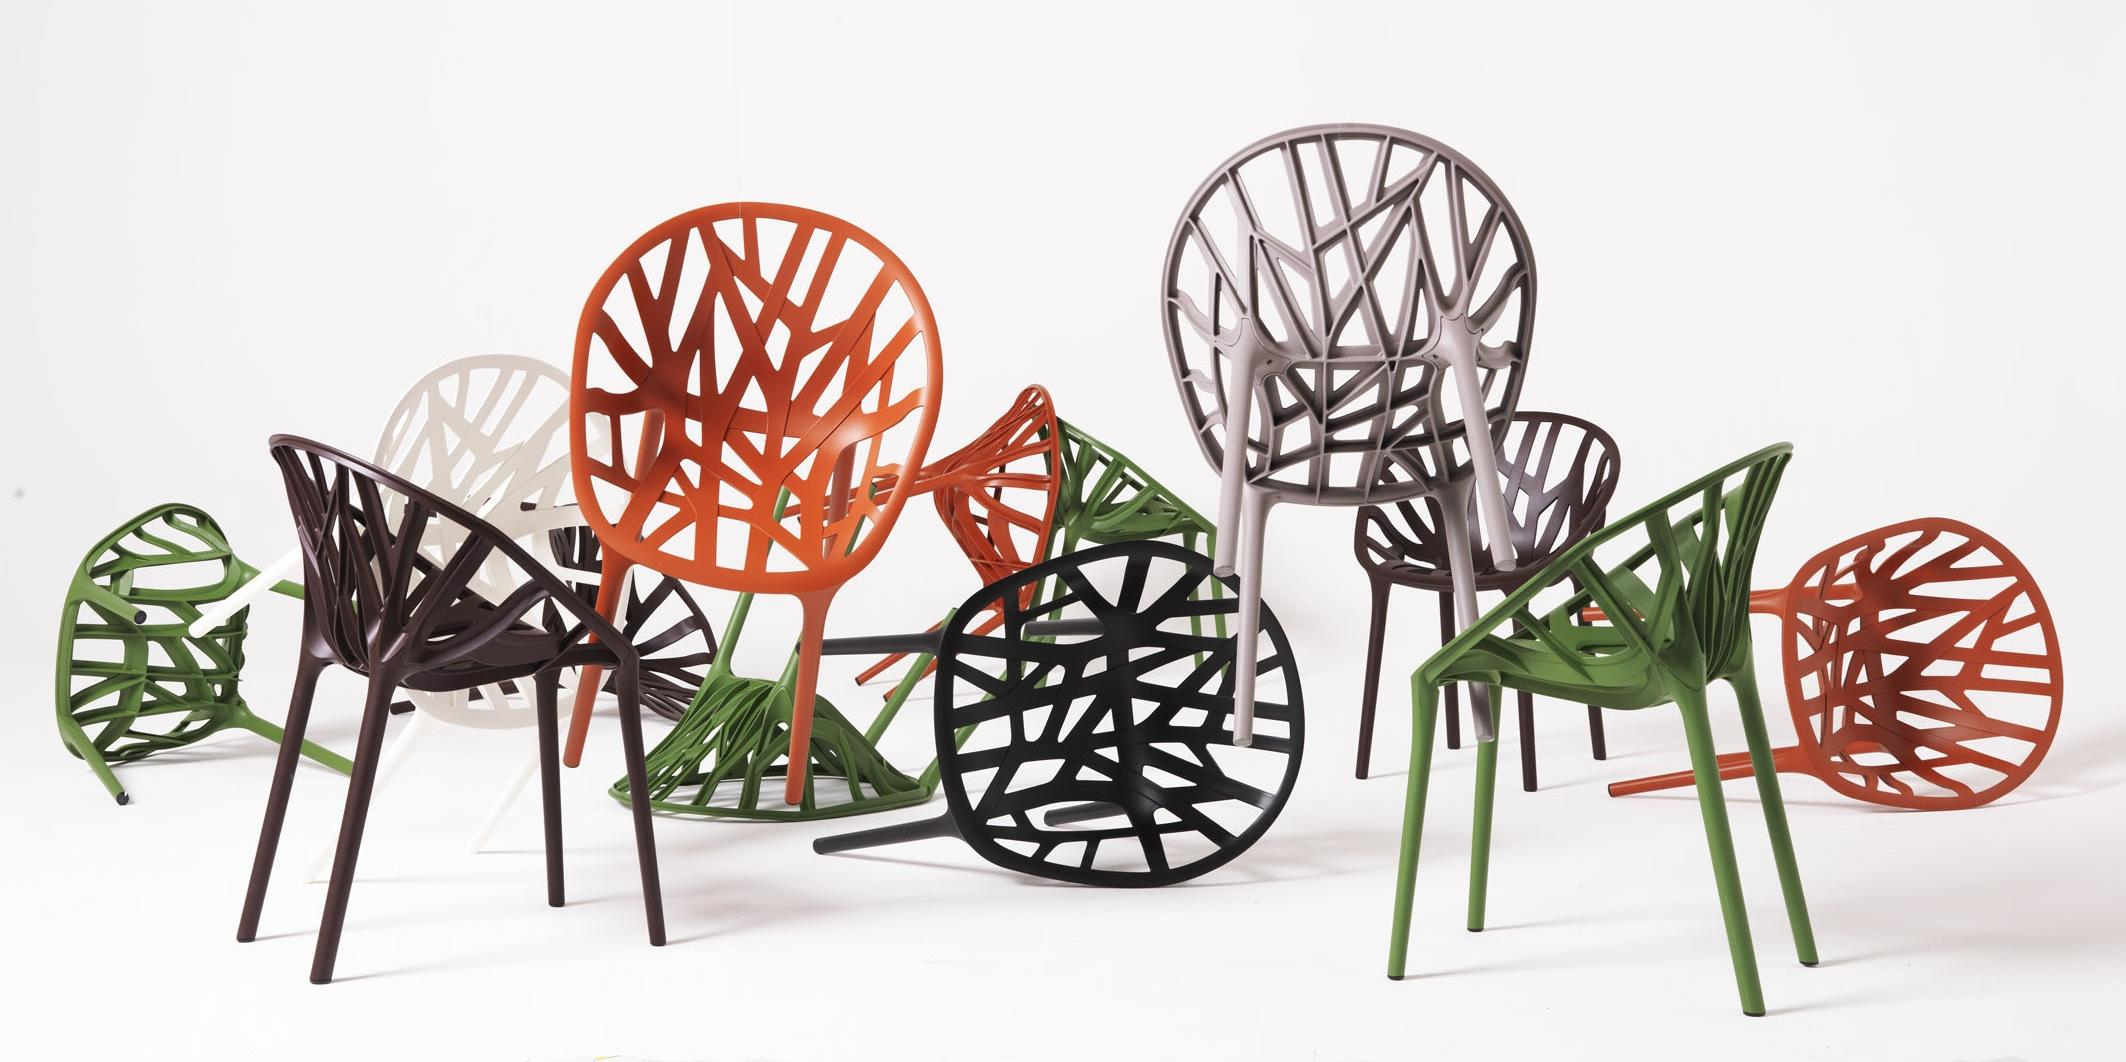 Myhomedesign zoom sur les fr res bouroullec myhomedesign - Les freres bouroullec biographie ...